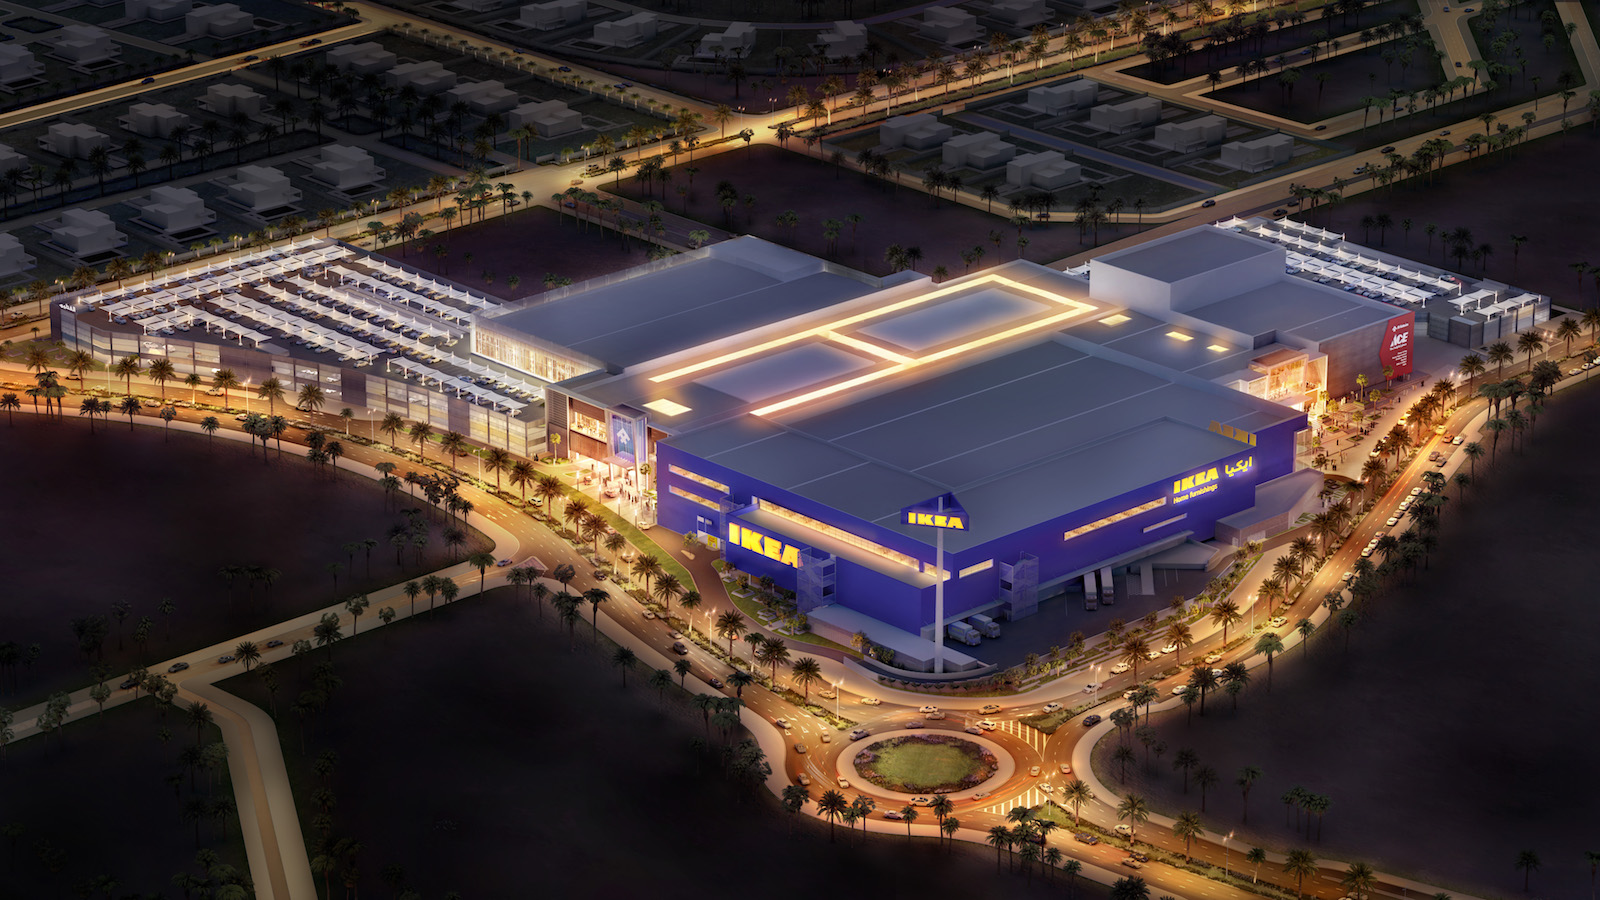 Exclusive Ground Is Broken On Brand New Dubai Shopping Mall Development Bsbg Brewer Smith